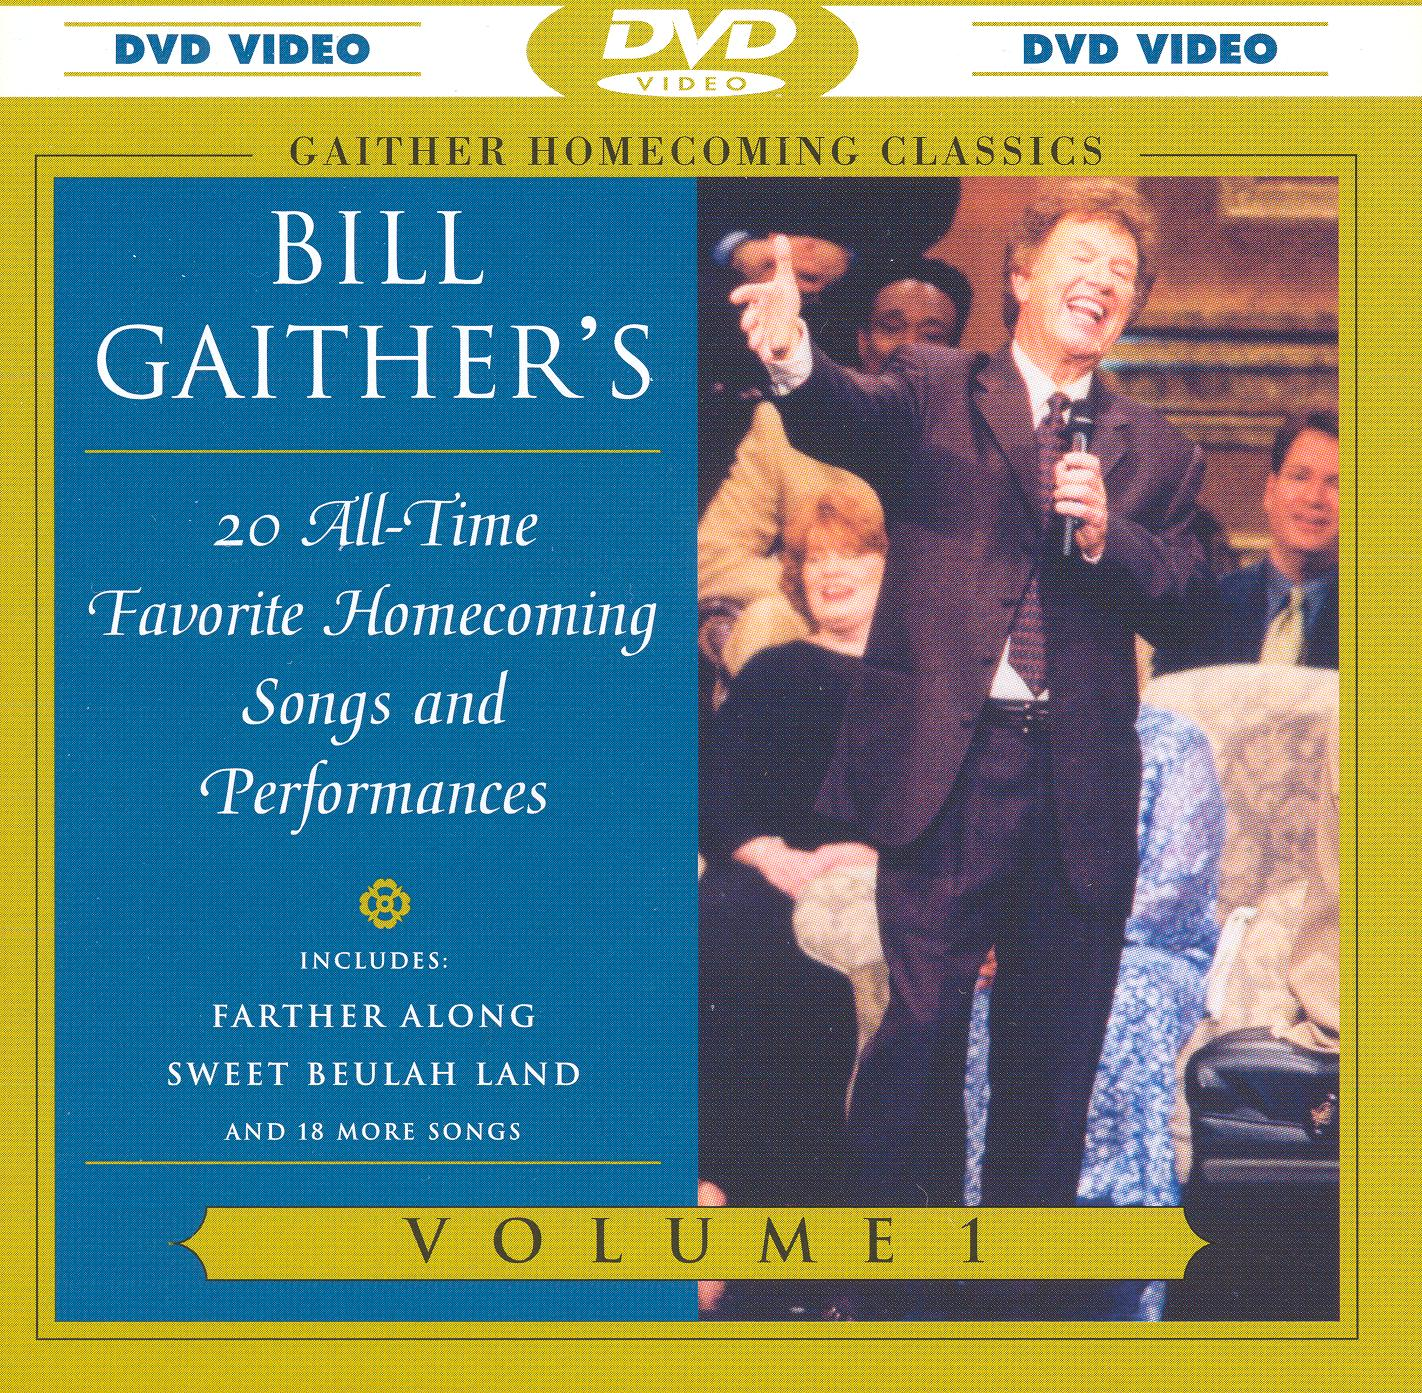 Bill and Gloria Gaither: Gaither Homecoming Classics, Vol. 1